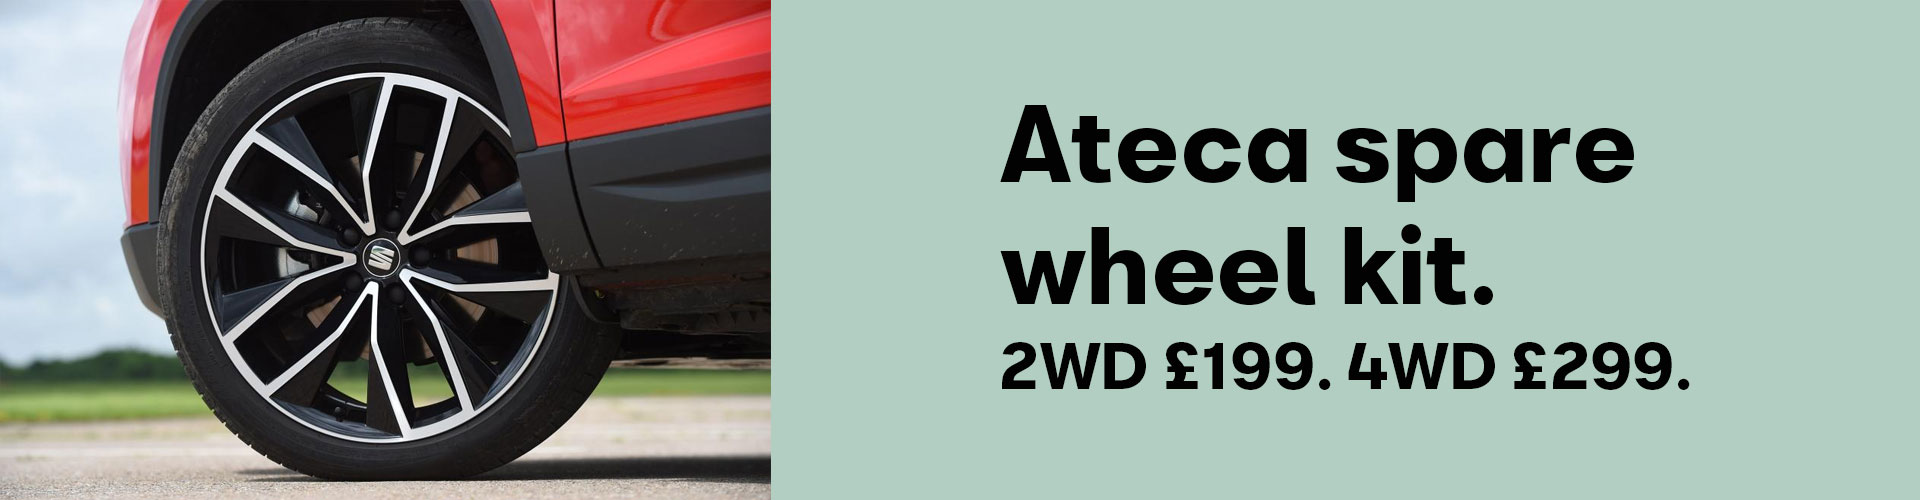 Ateca Spare Wheel - be ready for the unexpected